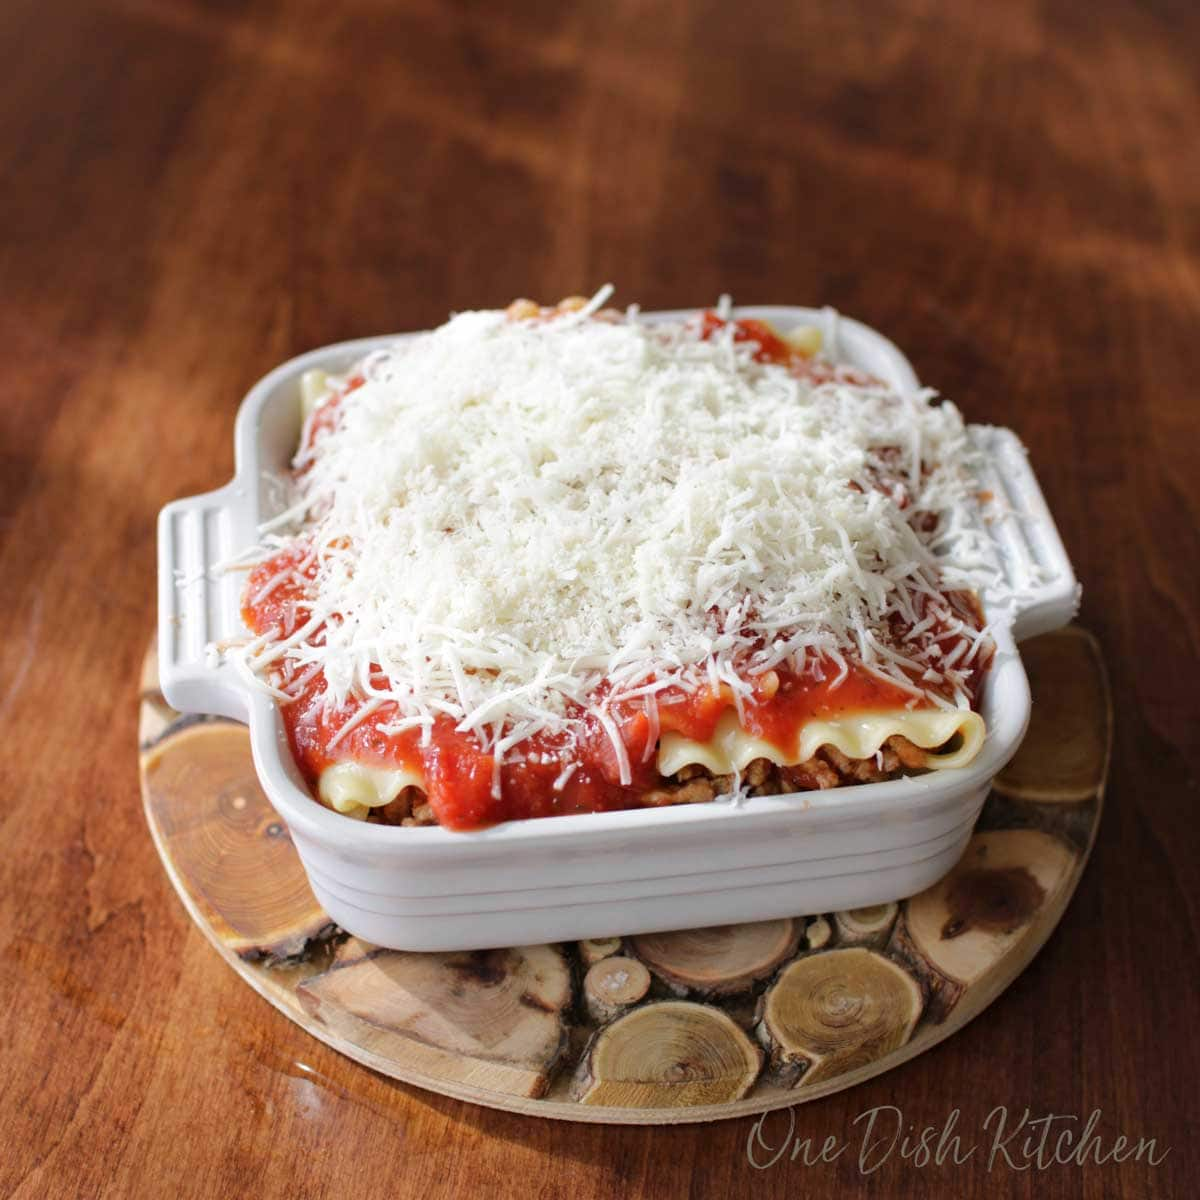 A mini lasagna covered with shredded mozzarella cheese before baking in the oven